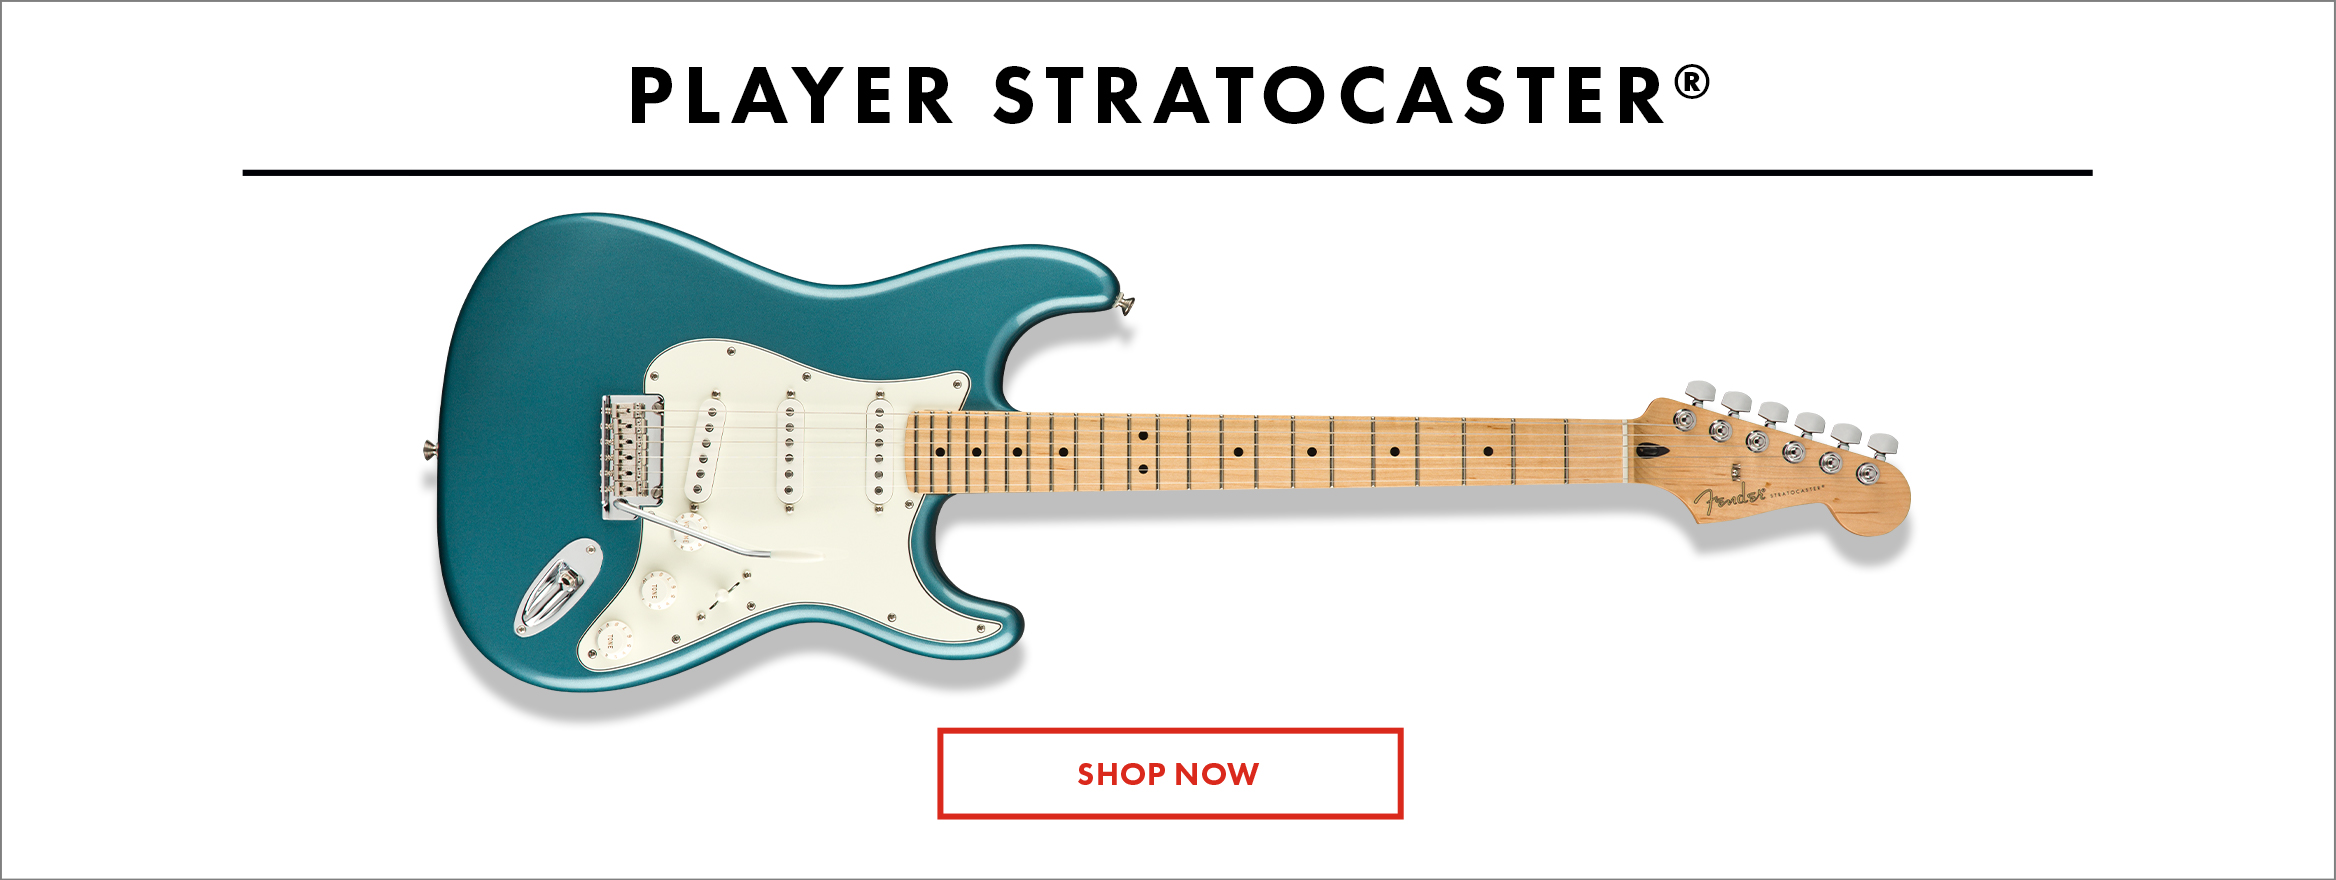 Wed Editorial 0728 20 Images for Stratocaster Article Update PlayerStrat